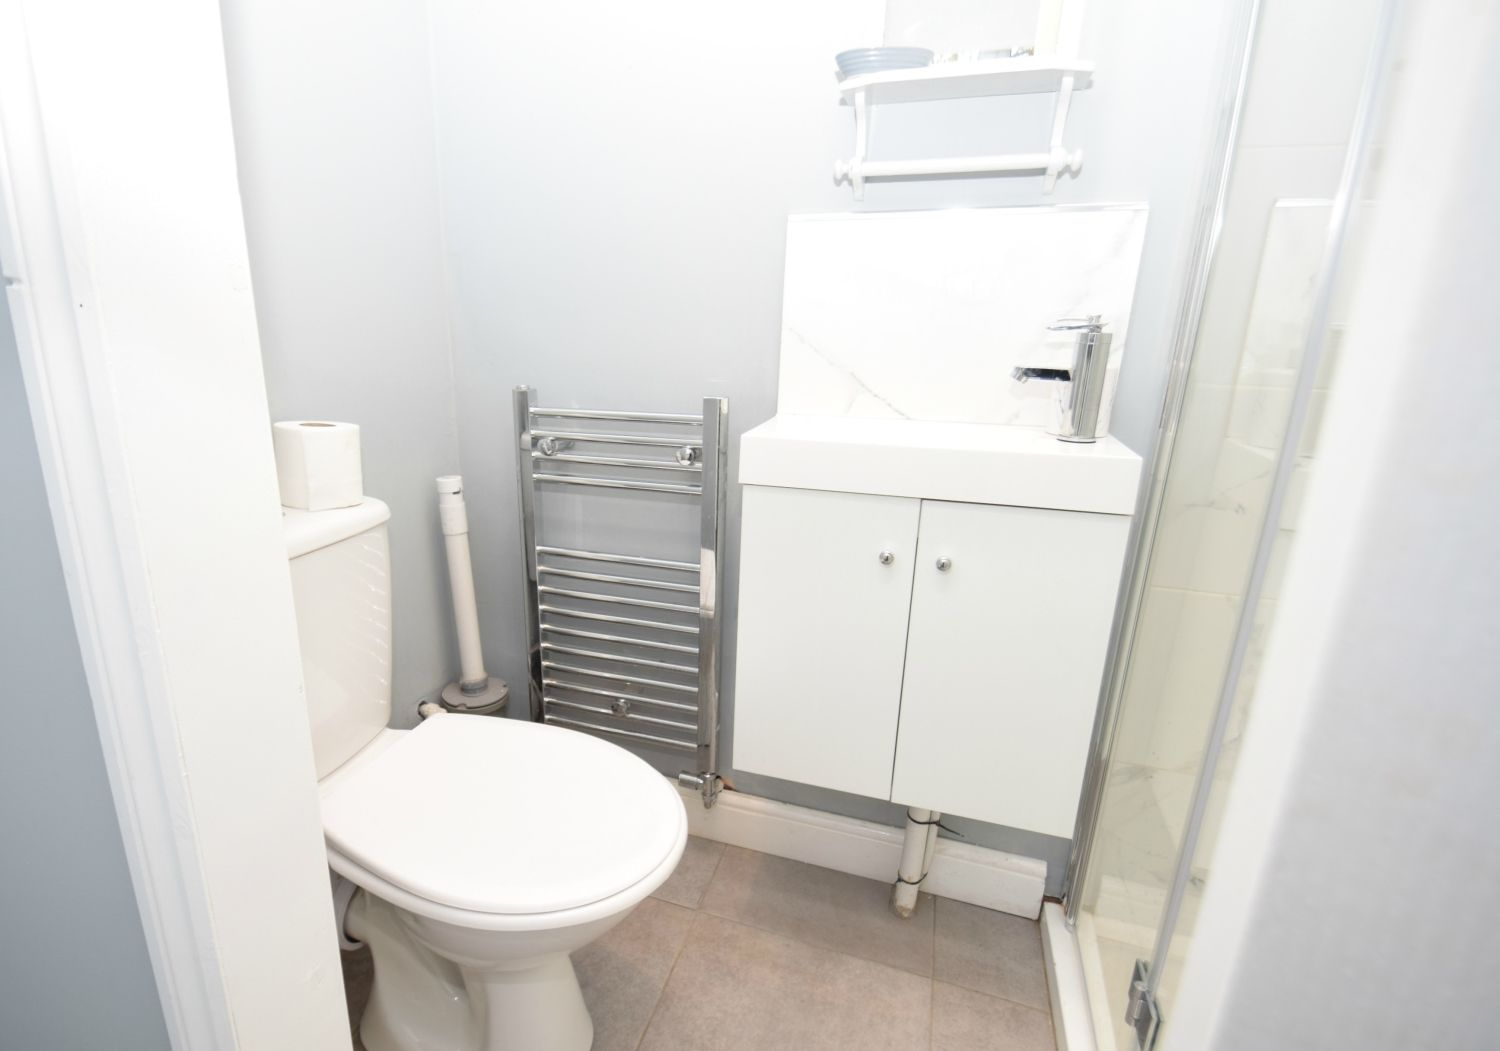 4 bed semi-detached for sale in Upland Grove, Bromsgrove, B61  - Property Image 14